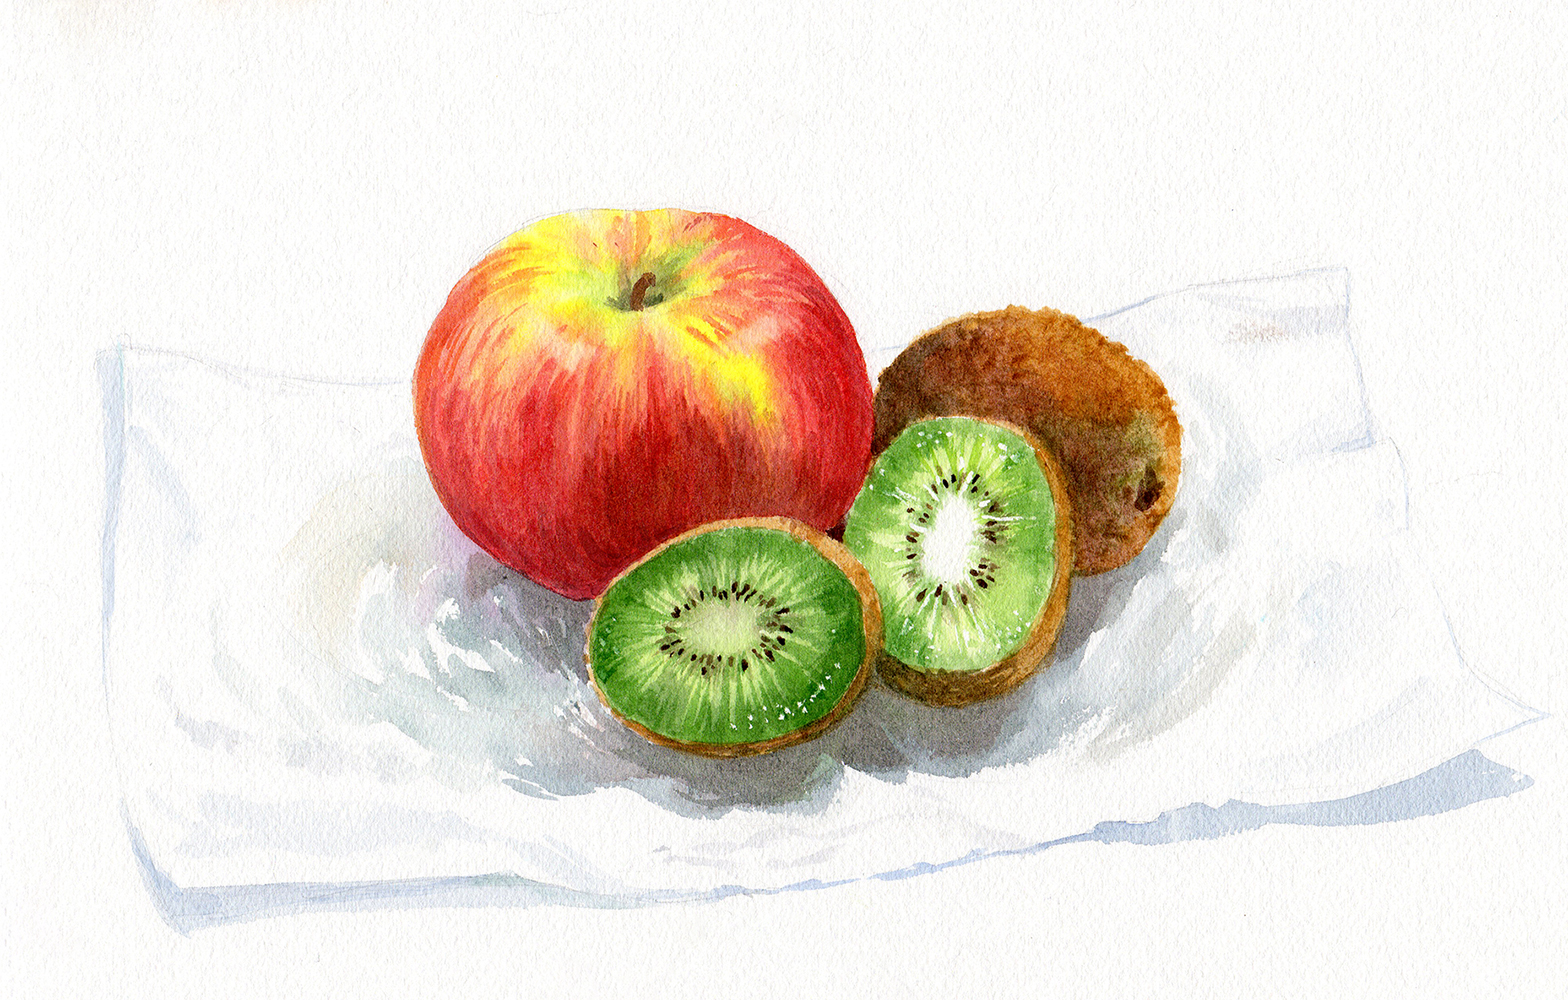 1568x1000 Painting A Watercolor Still Life An Apple And Kiwis